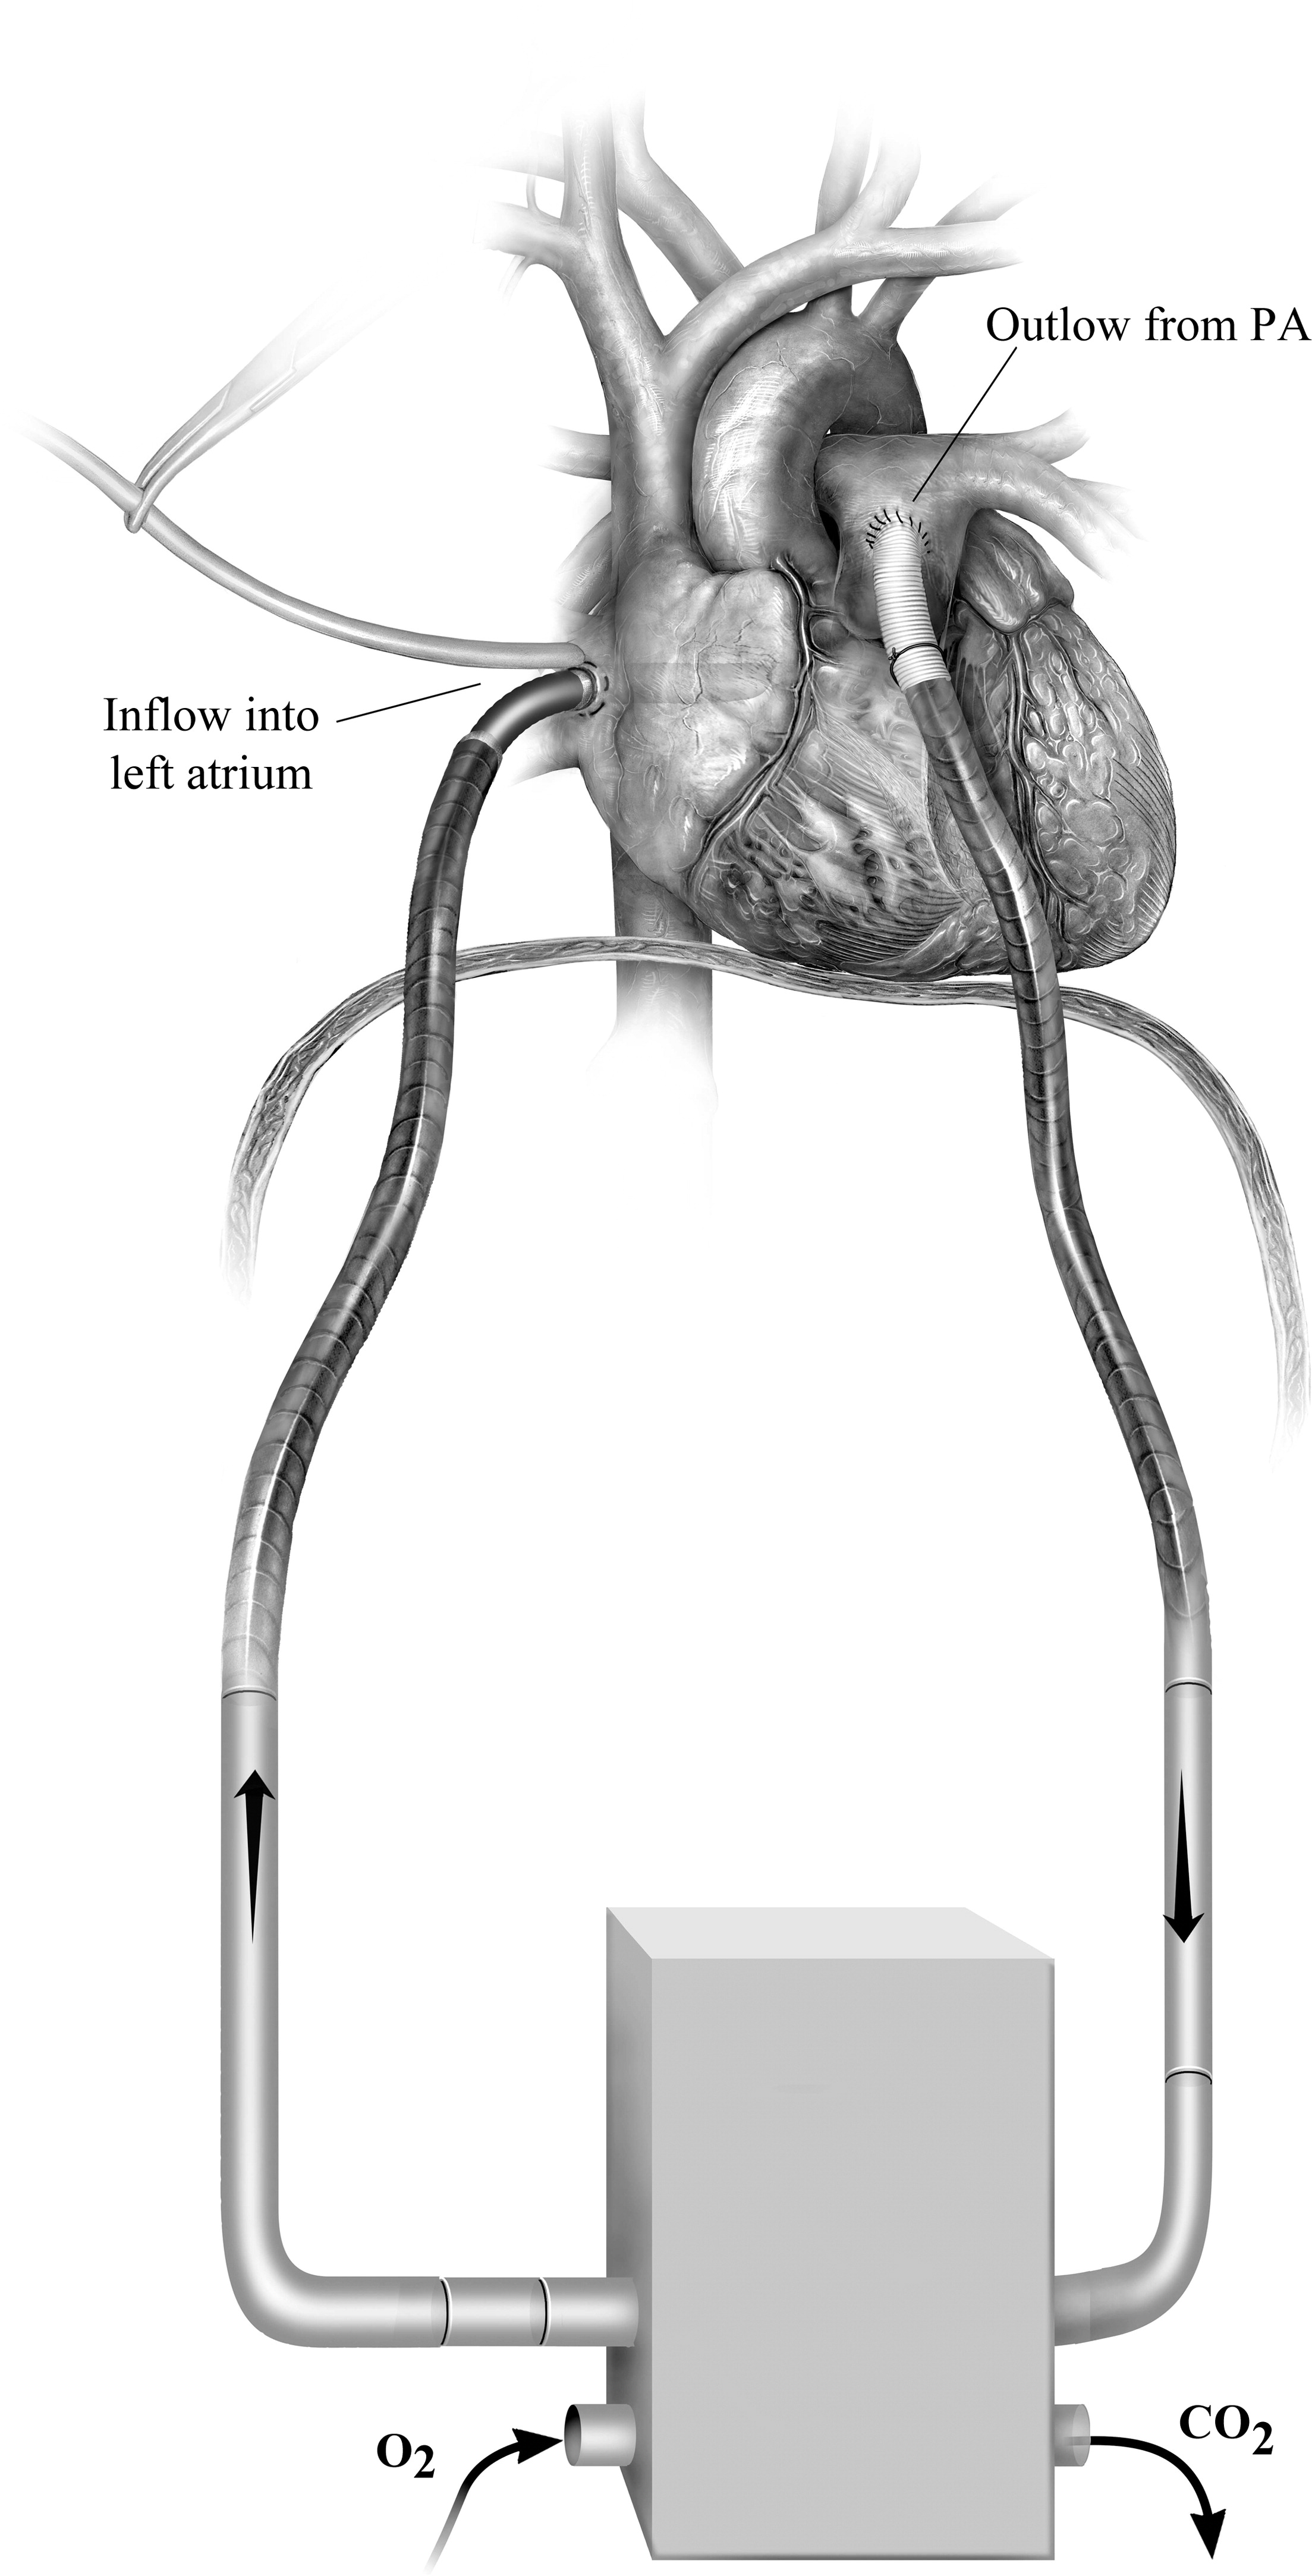 cardiac and thoracic procedures